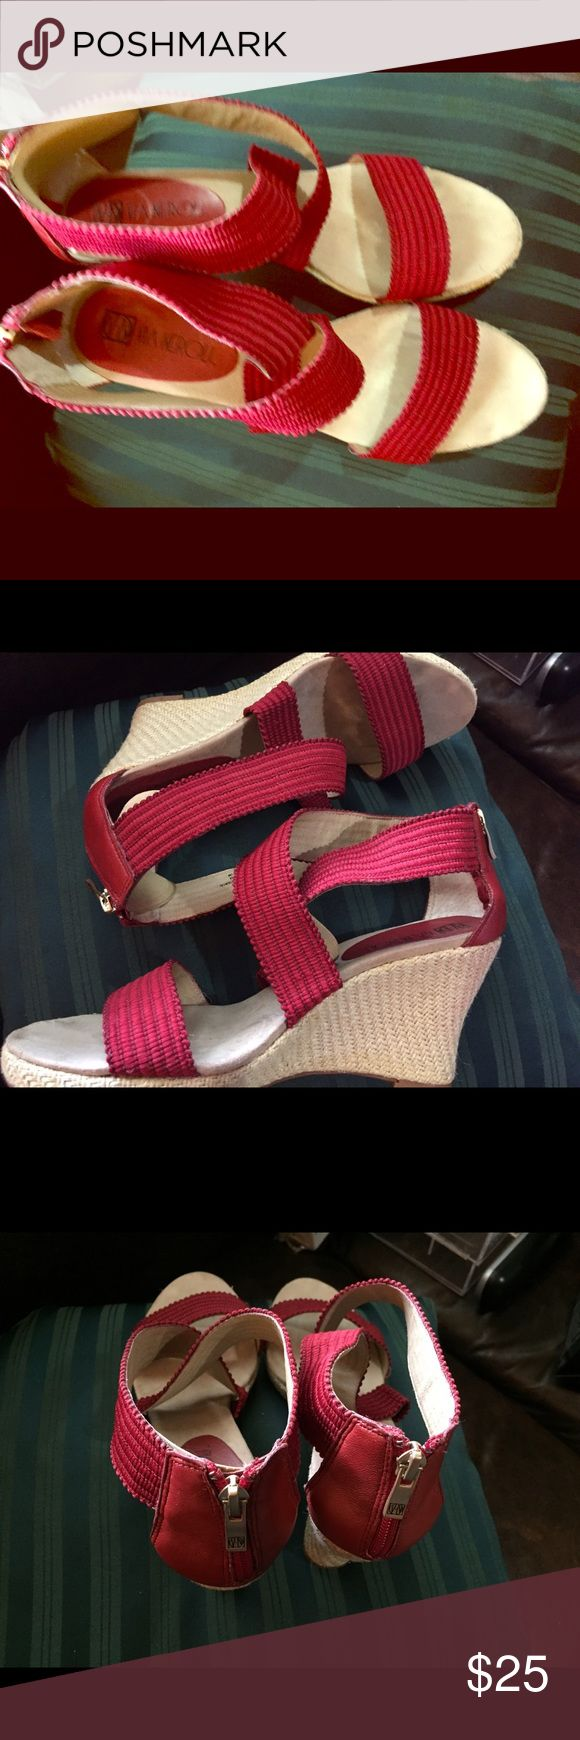 Shoes Red ankle/criss/cross straps Wedges.Fabric uppers, Zipper in back with leather strip via Neroli Shoes Sandals